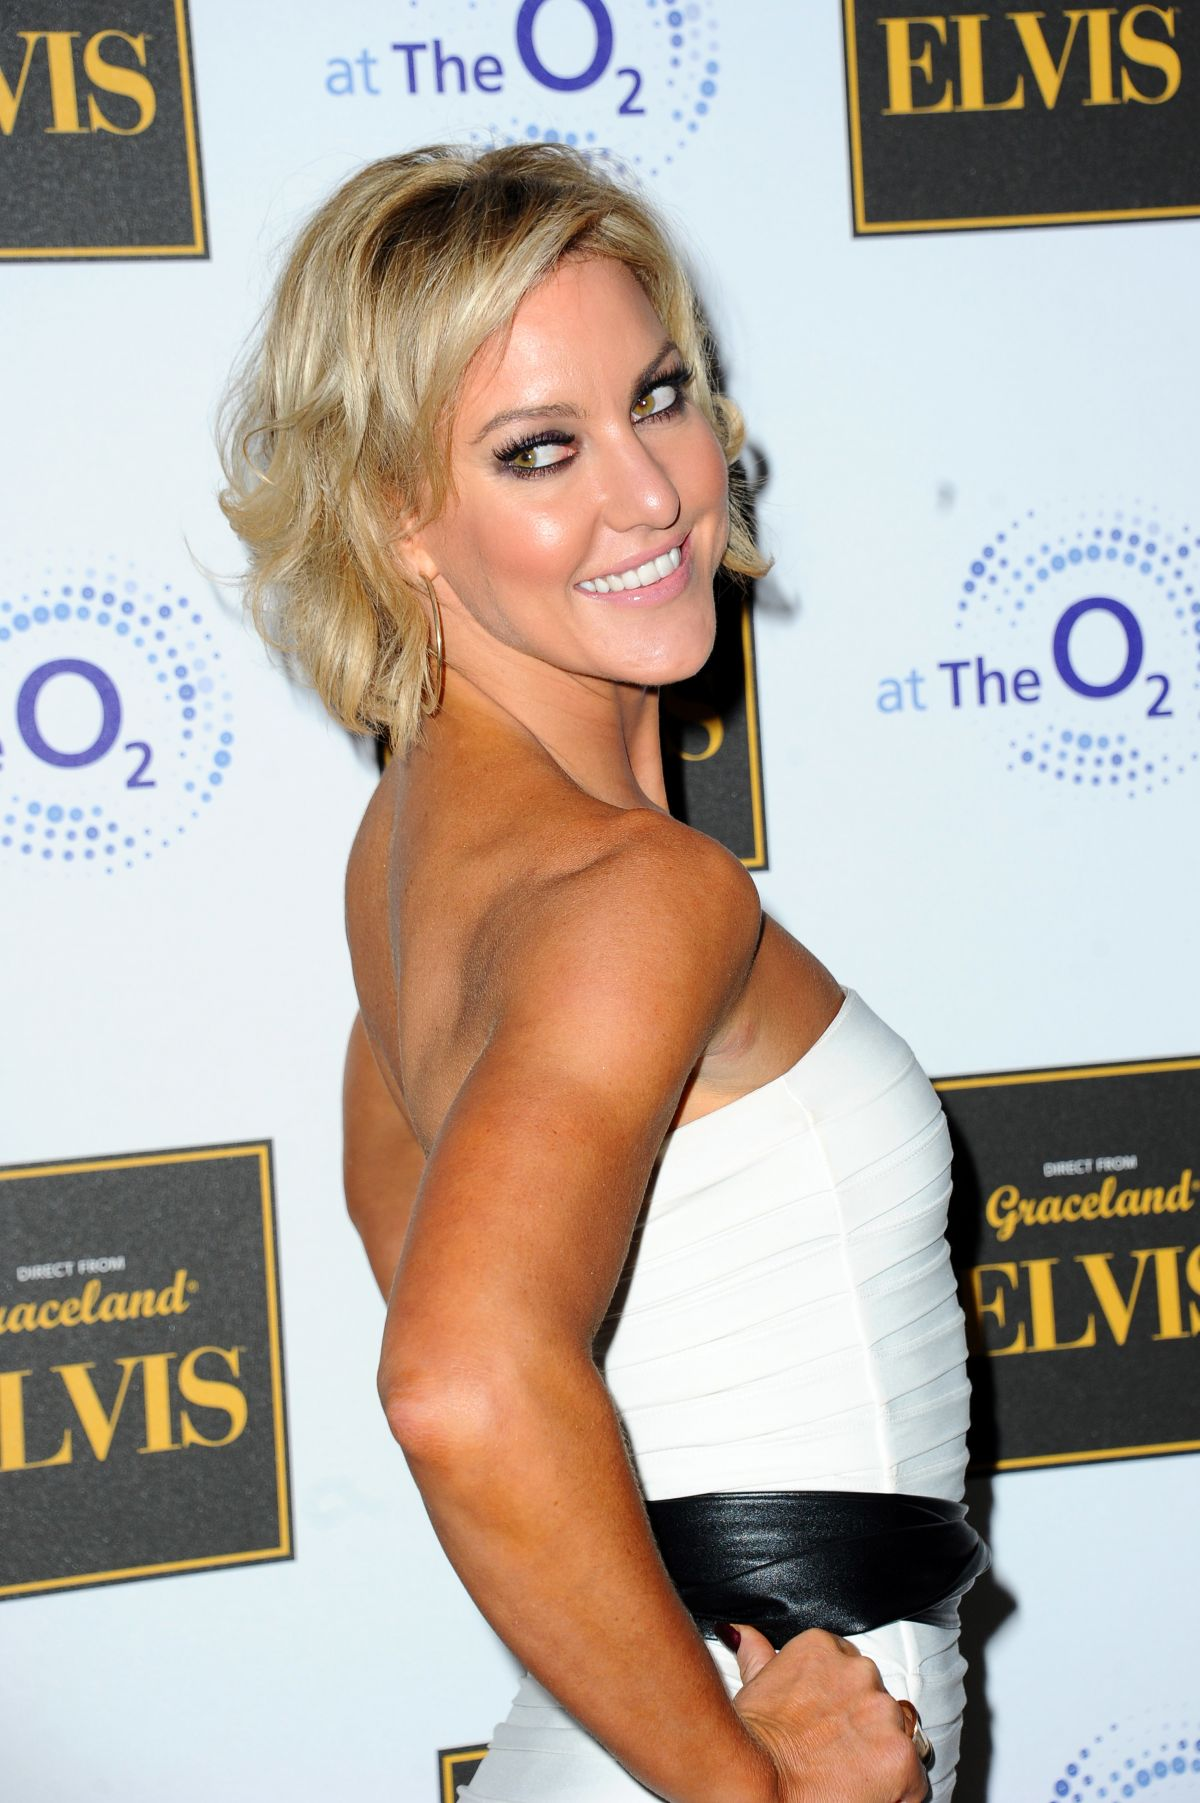 NATALIE LOWE at Elvis at the O2 Exhibition in London